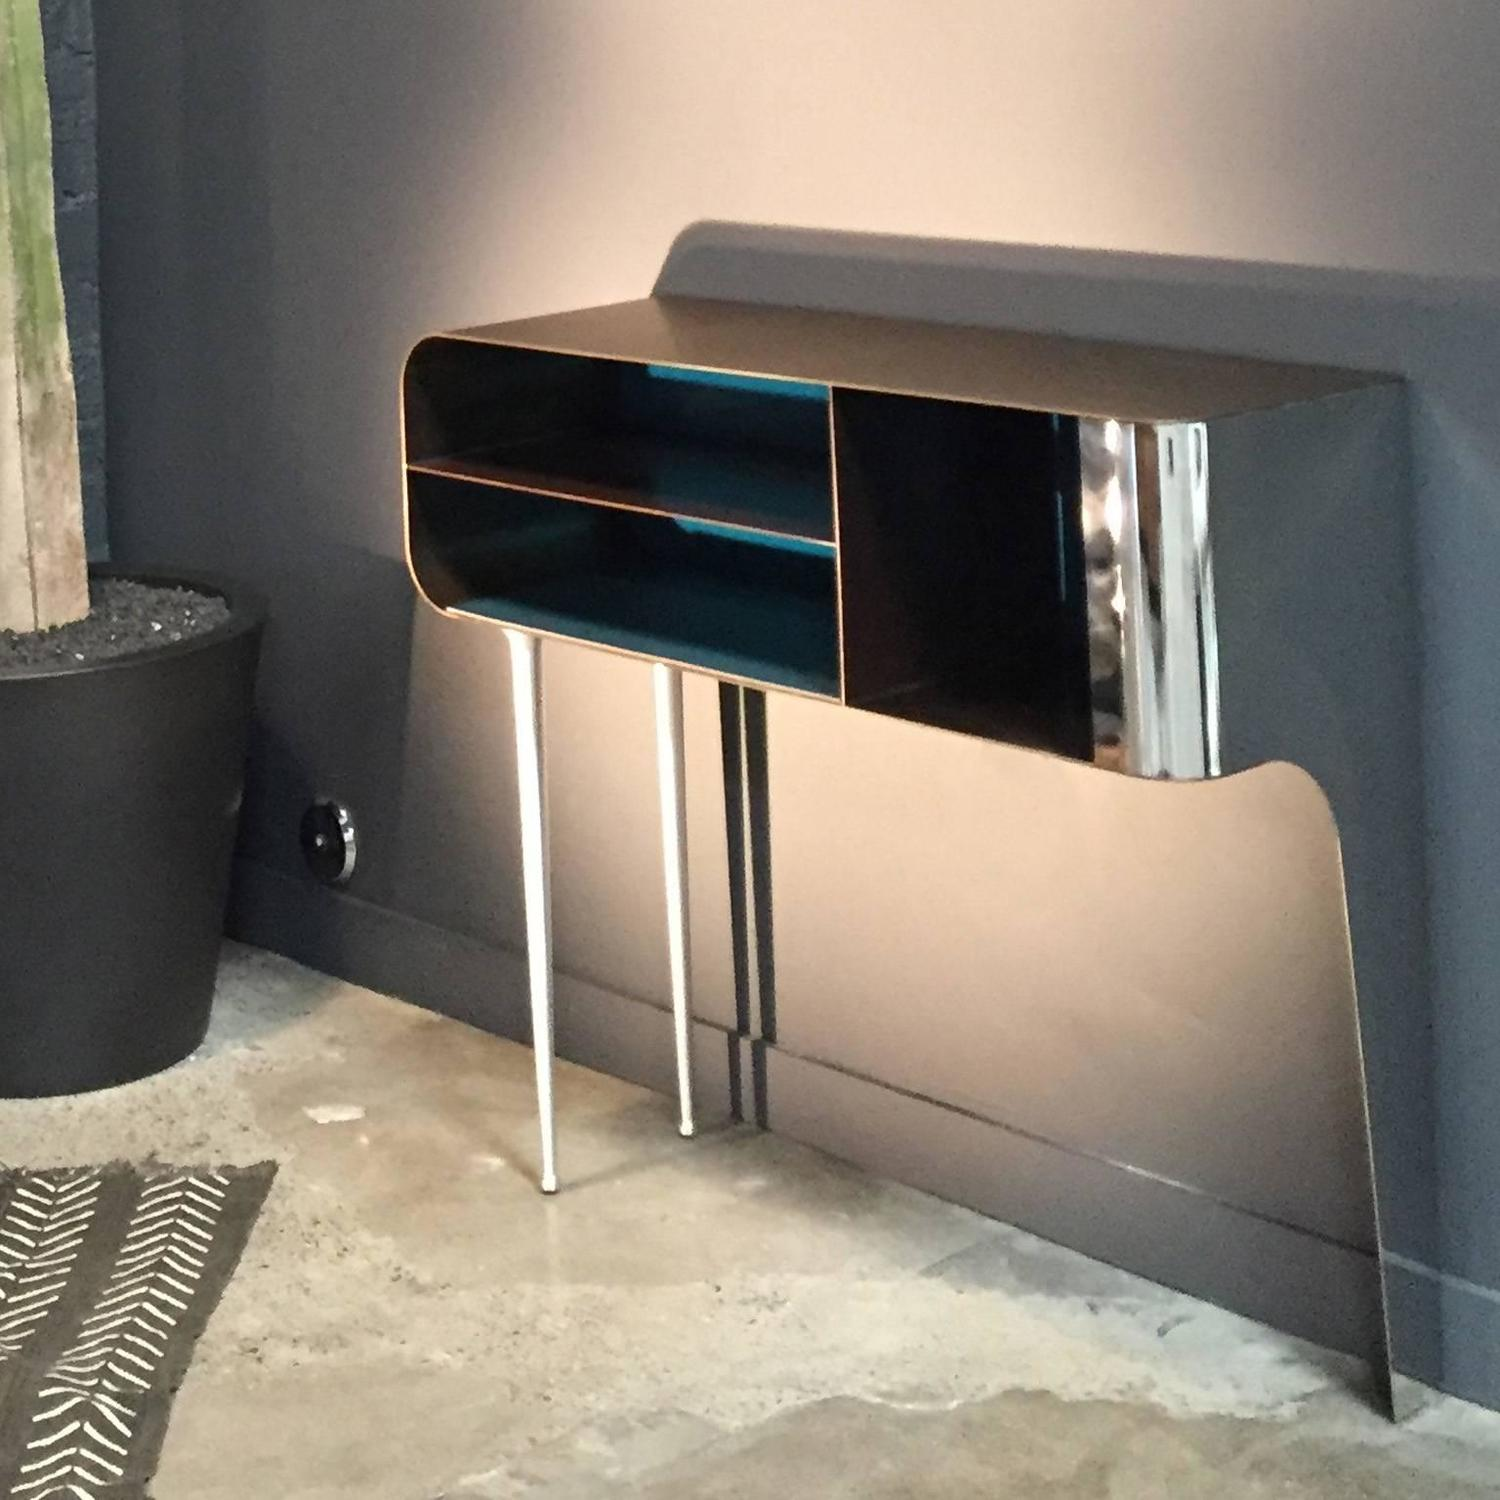 Solometallo Console By Nikita Bettoni For Decastelli For Sale At 1stdibs